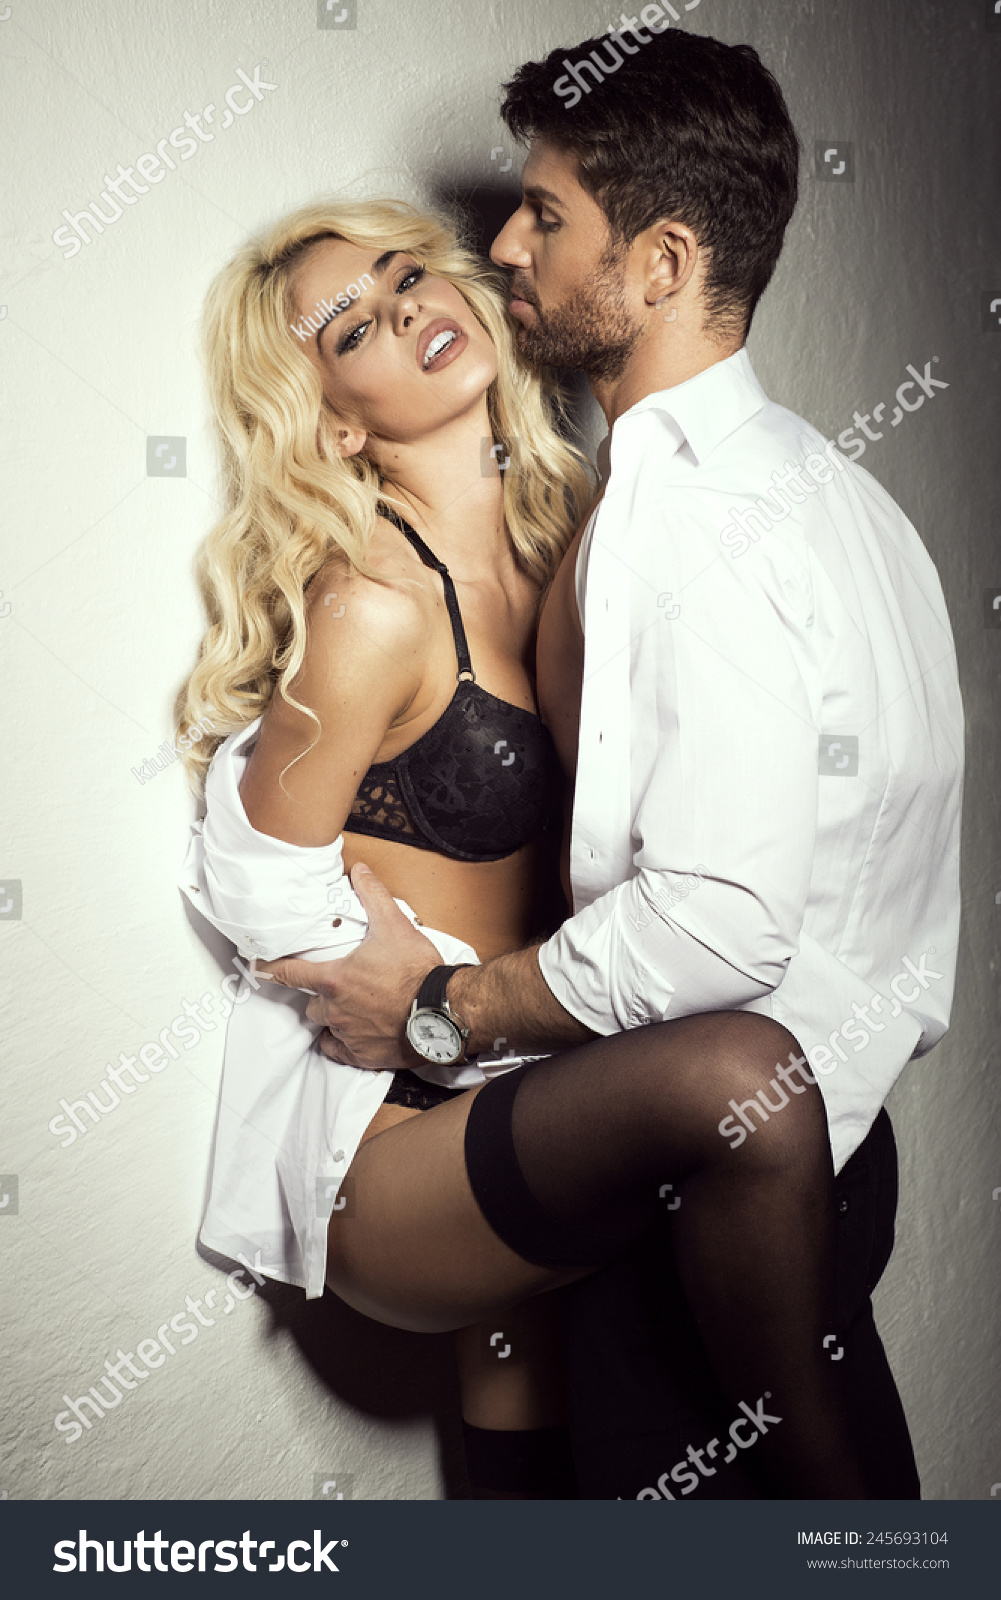 Young Sexy Undress Couple Stock Photo 245693104 - Shutterstock-9335